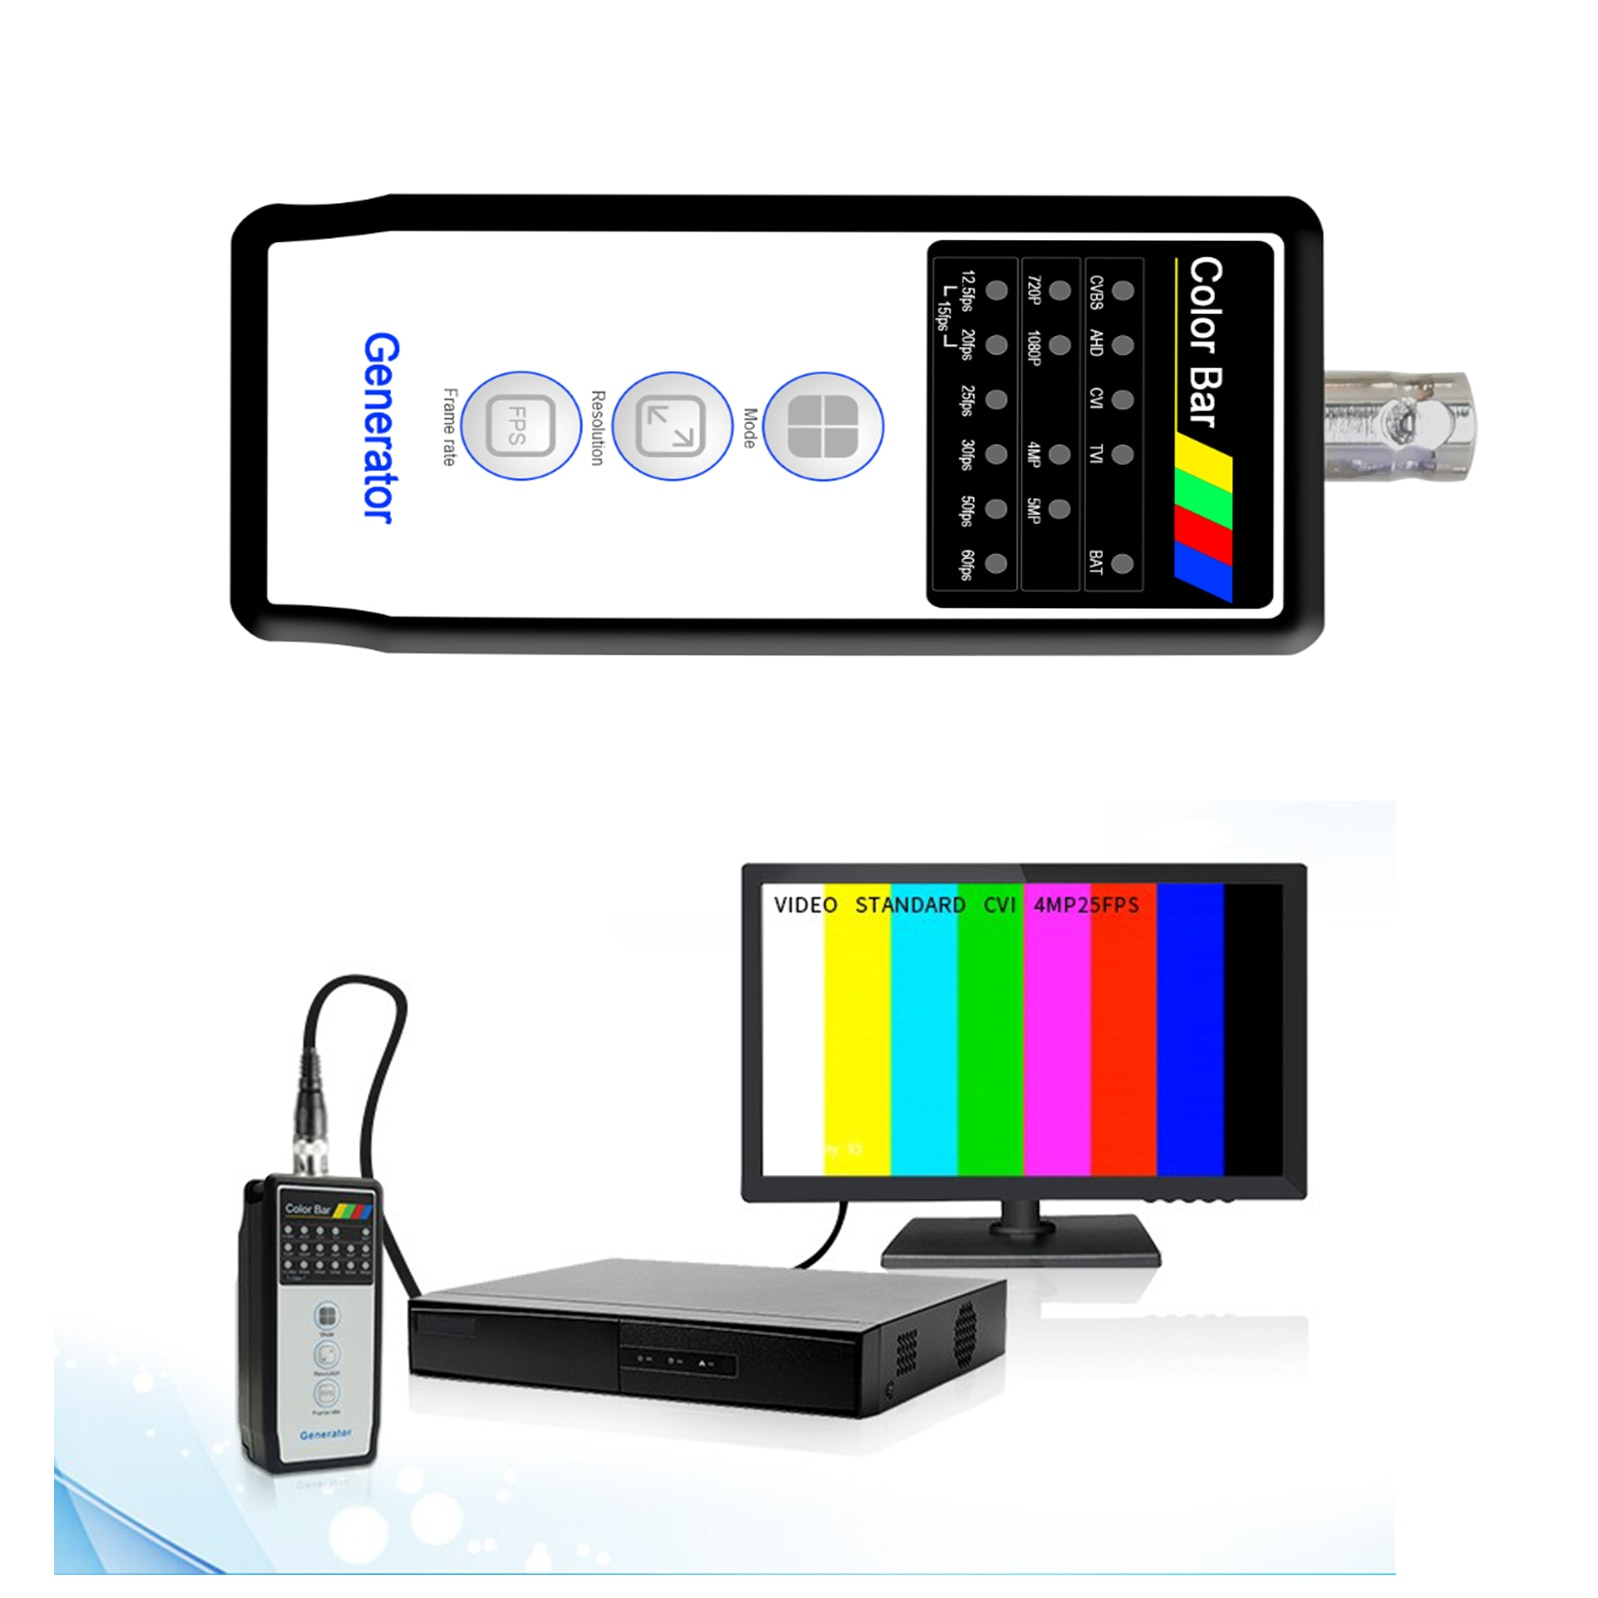 Color Bar Generator CCTV teser 4MP CVI/5MP TVI/ 5MP AHD+CVBS for Security & Protection,Security monitoring troubleshooting tool